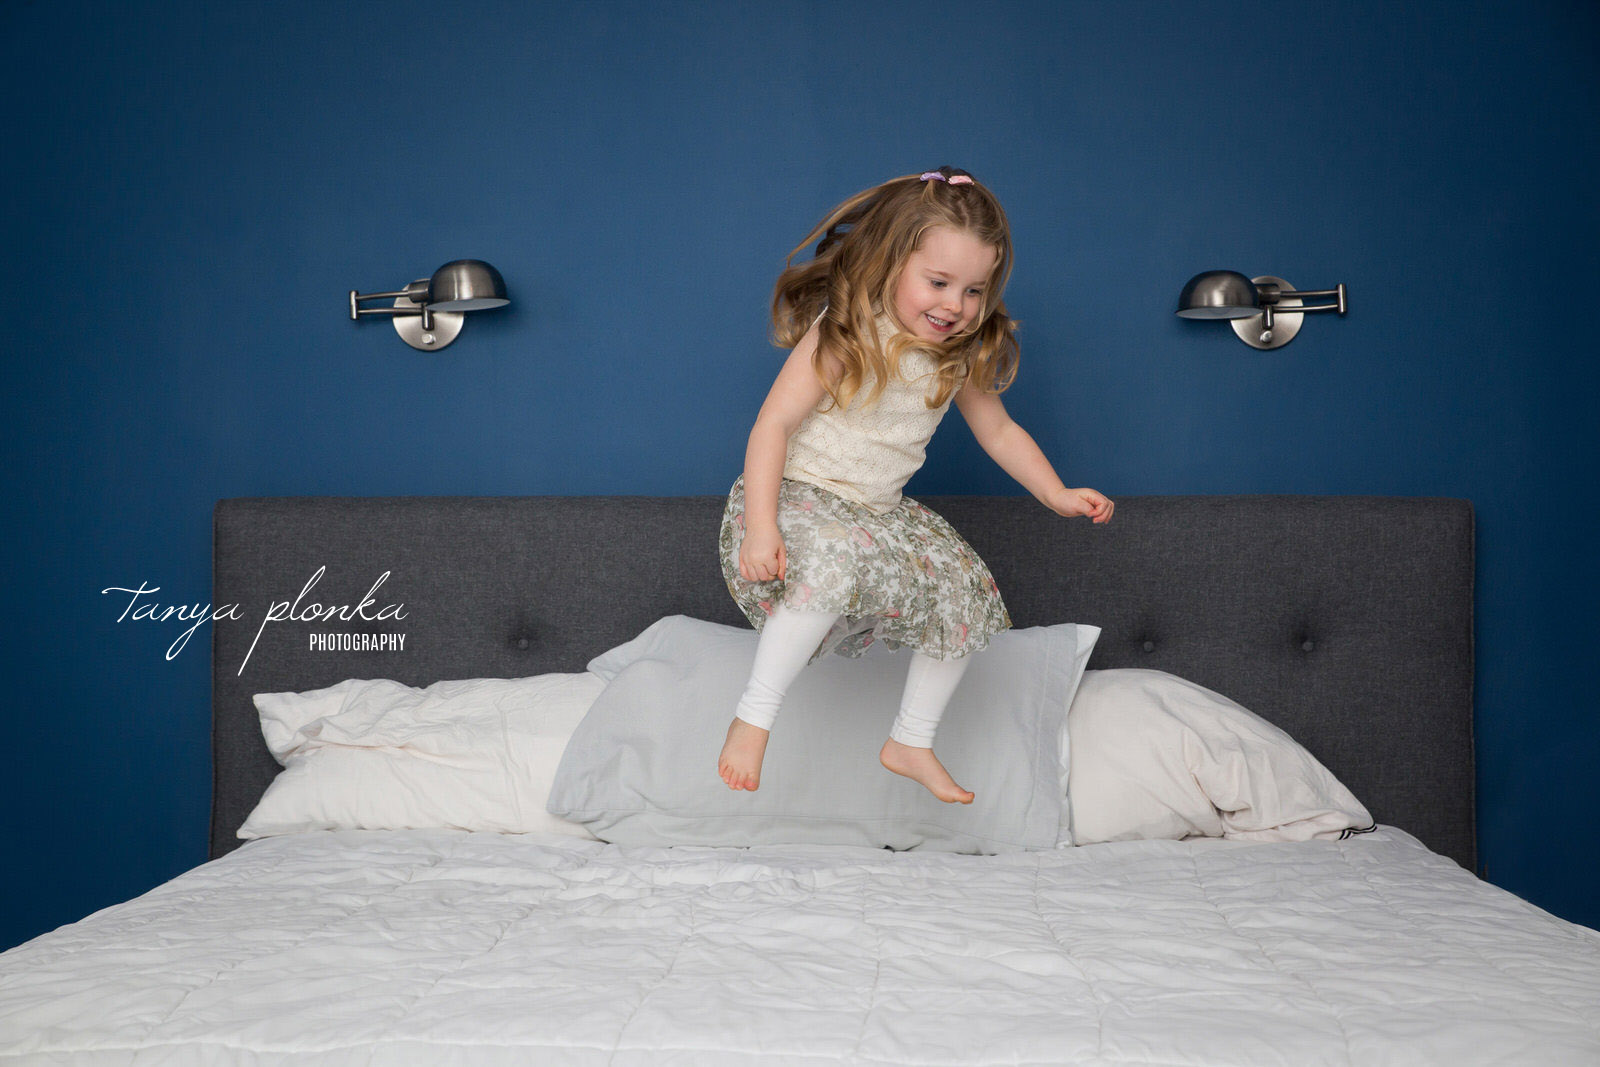 girl jumping on bed in front of blue wall